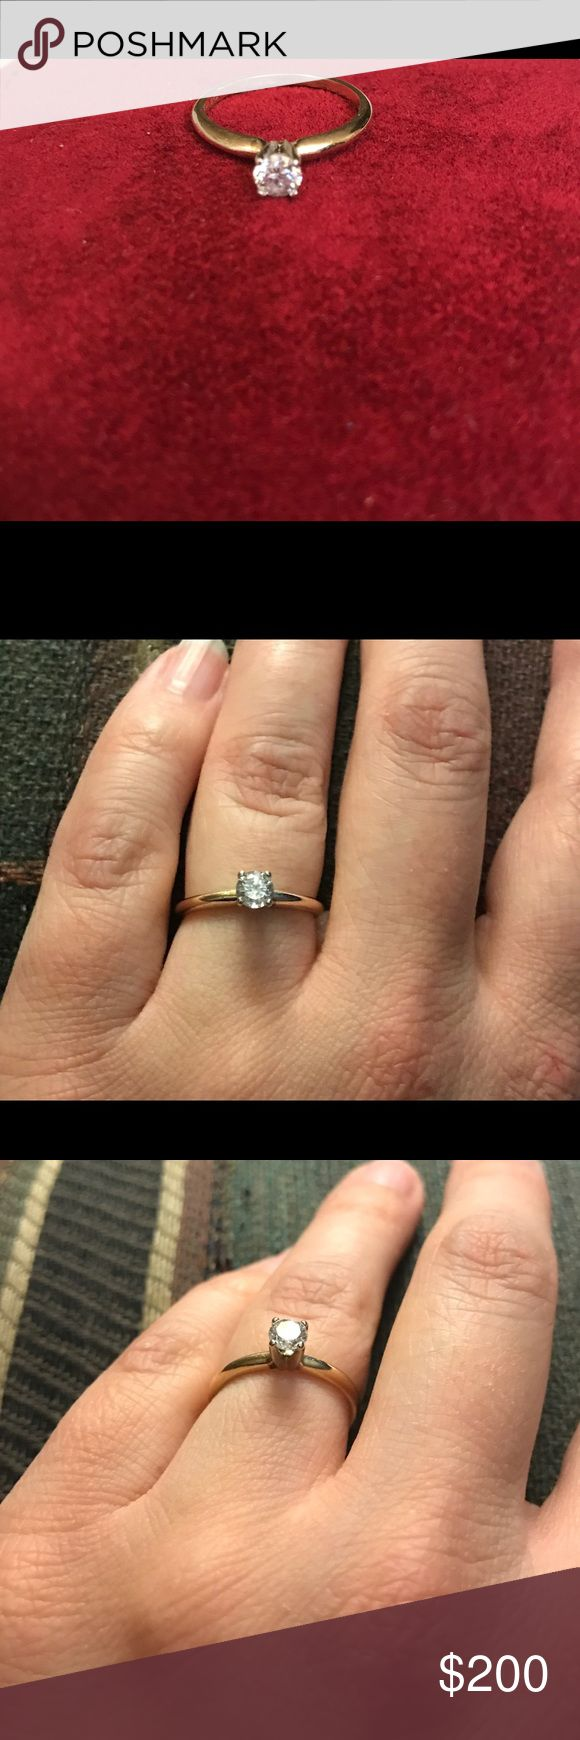 1/3 cttw diamond/ 14k gold engagement ring 1/3 cttw diamond engagement ring.  Marked 14k.  Originally bought at Zales and resized to 4 3/4.  I don't have the paperwork because it's about 20 years old.  It's small so it would make a nice promise ring.  In excellent condition, almost looks new. Zales Jewelry Rings